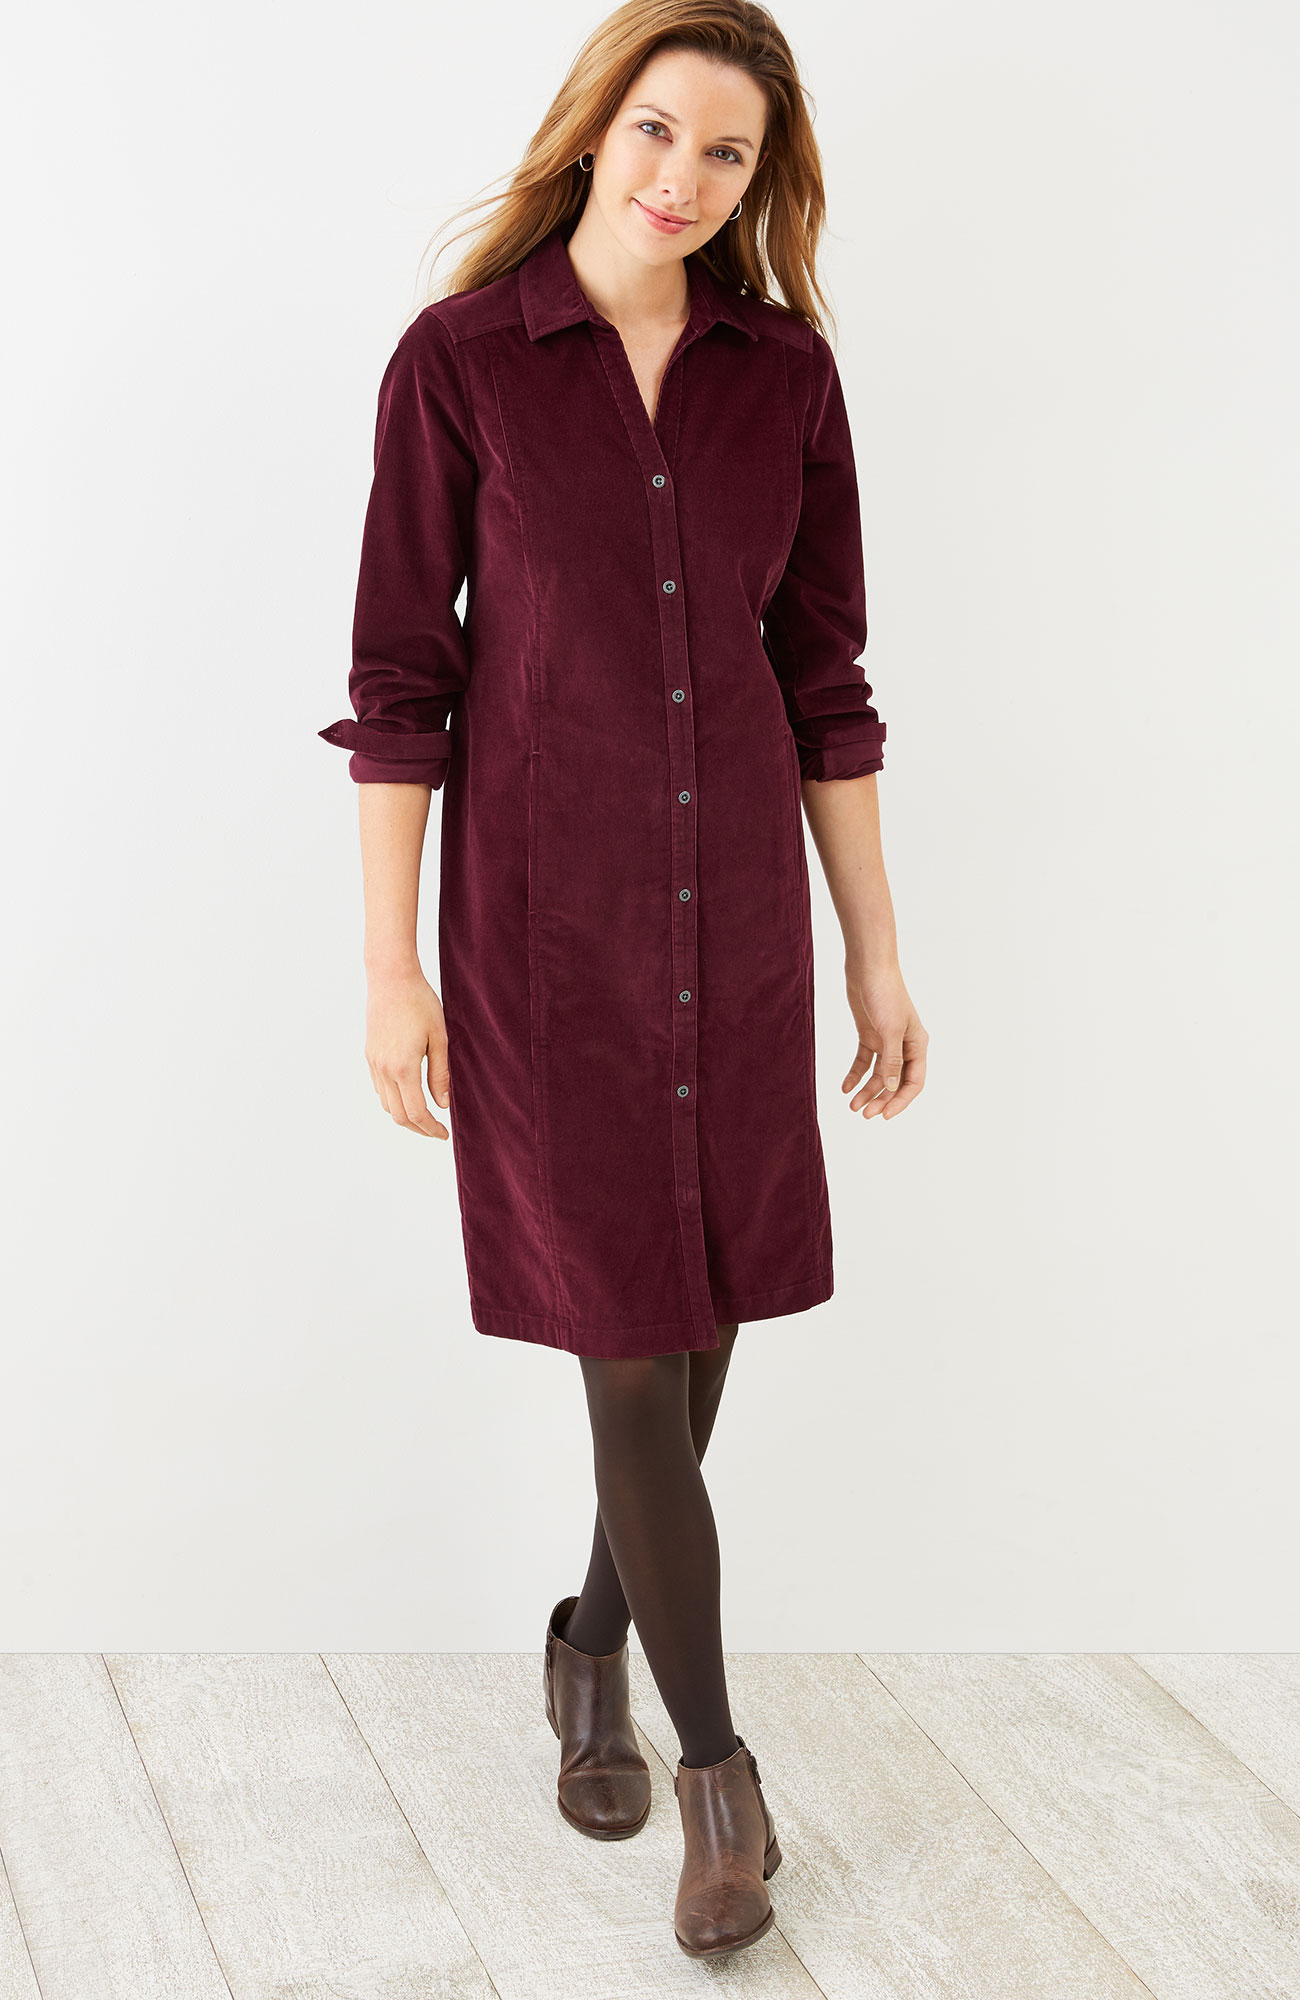 pincord shirtdress